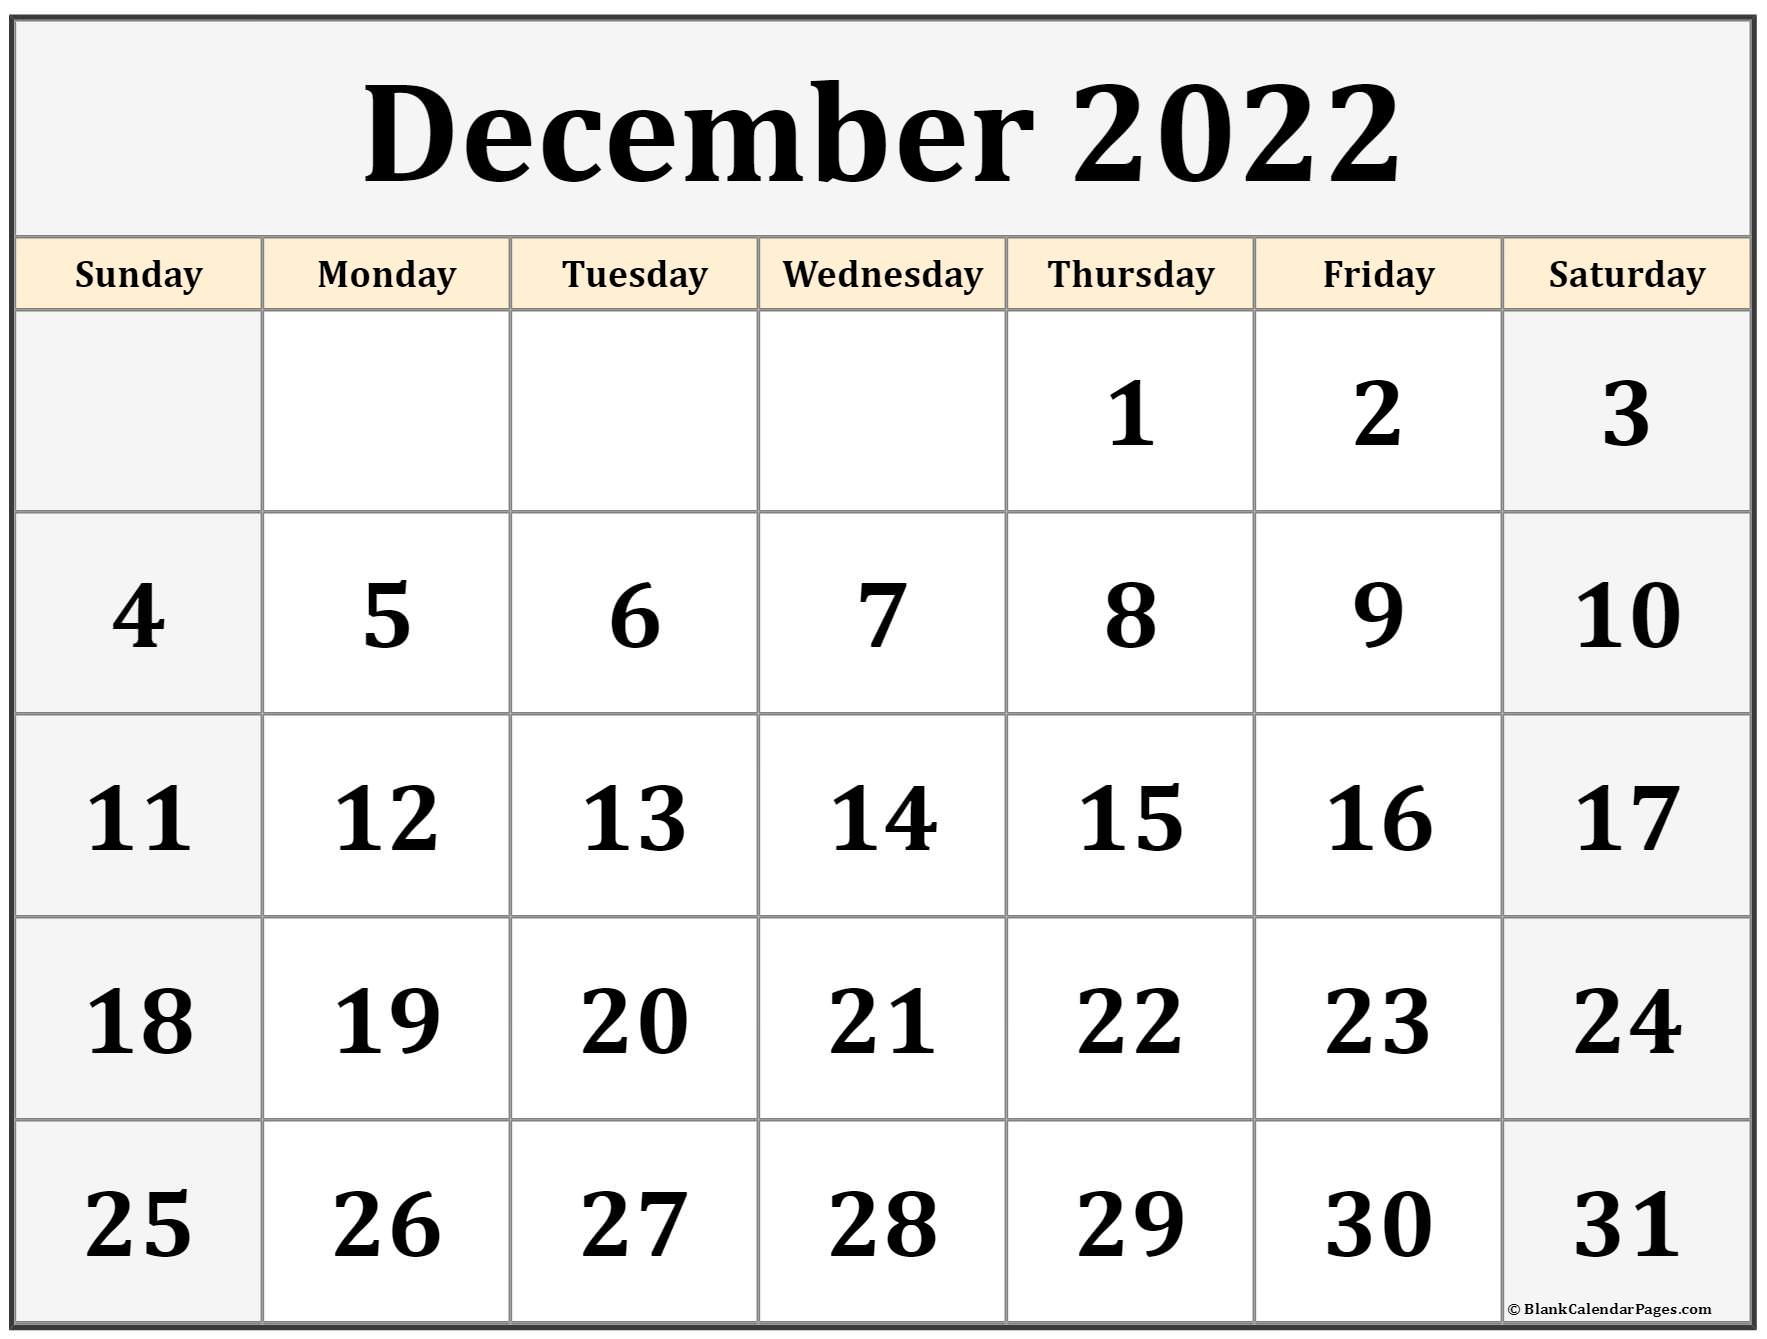 You can budget both your money and your time by making a. December 2022 calendar | free printable calendar templates